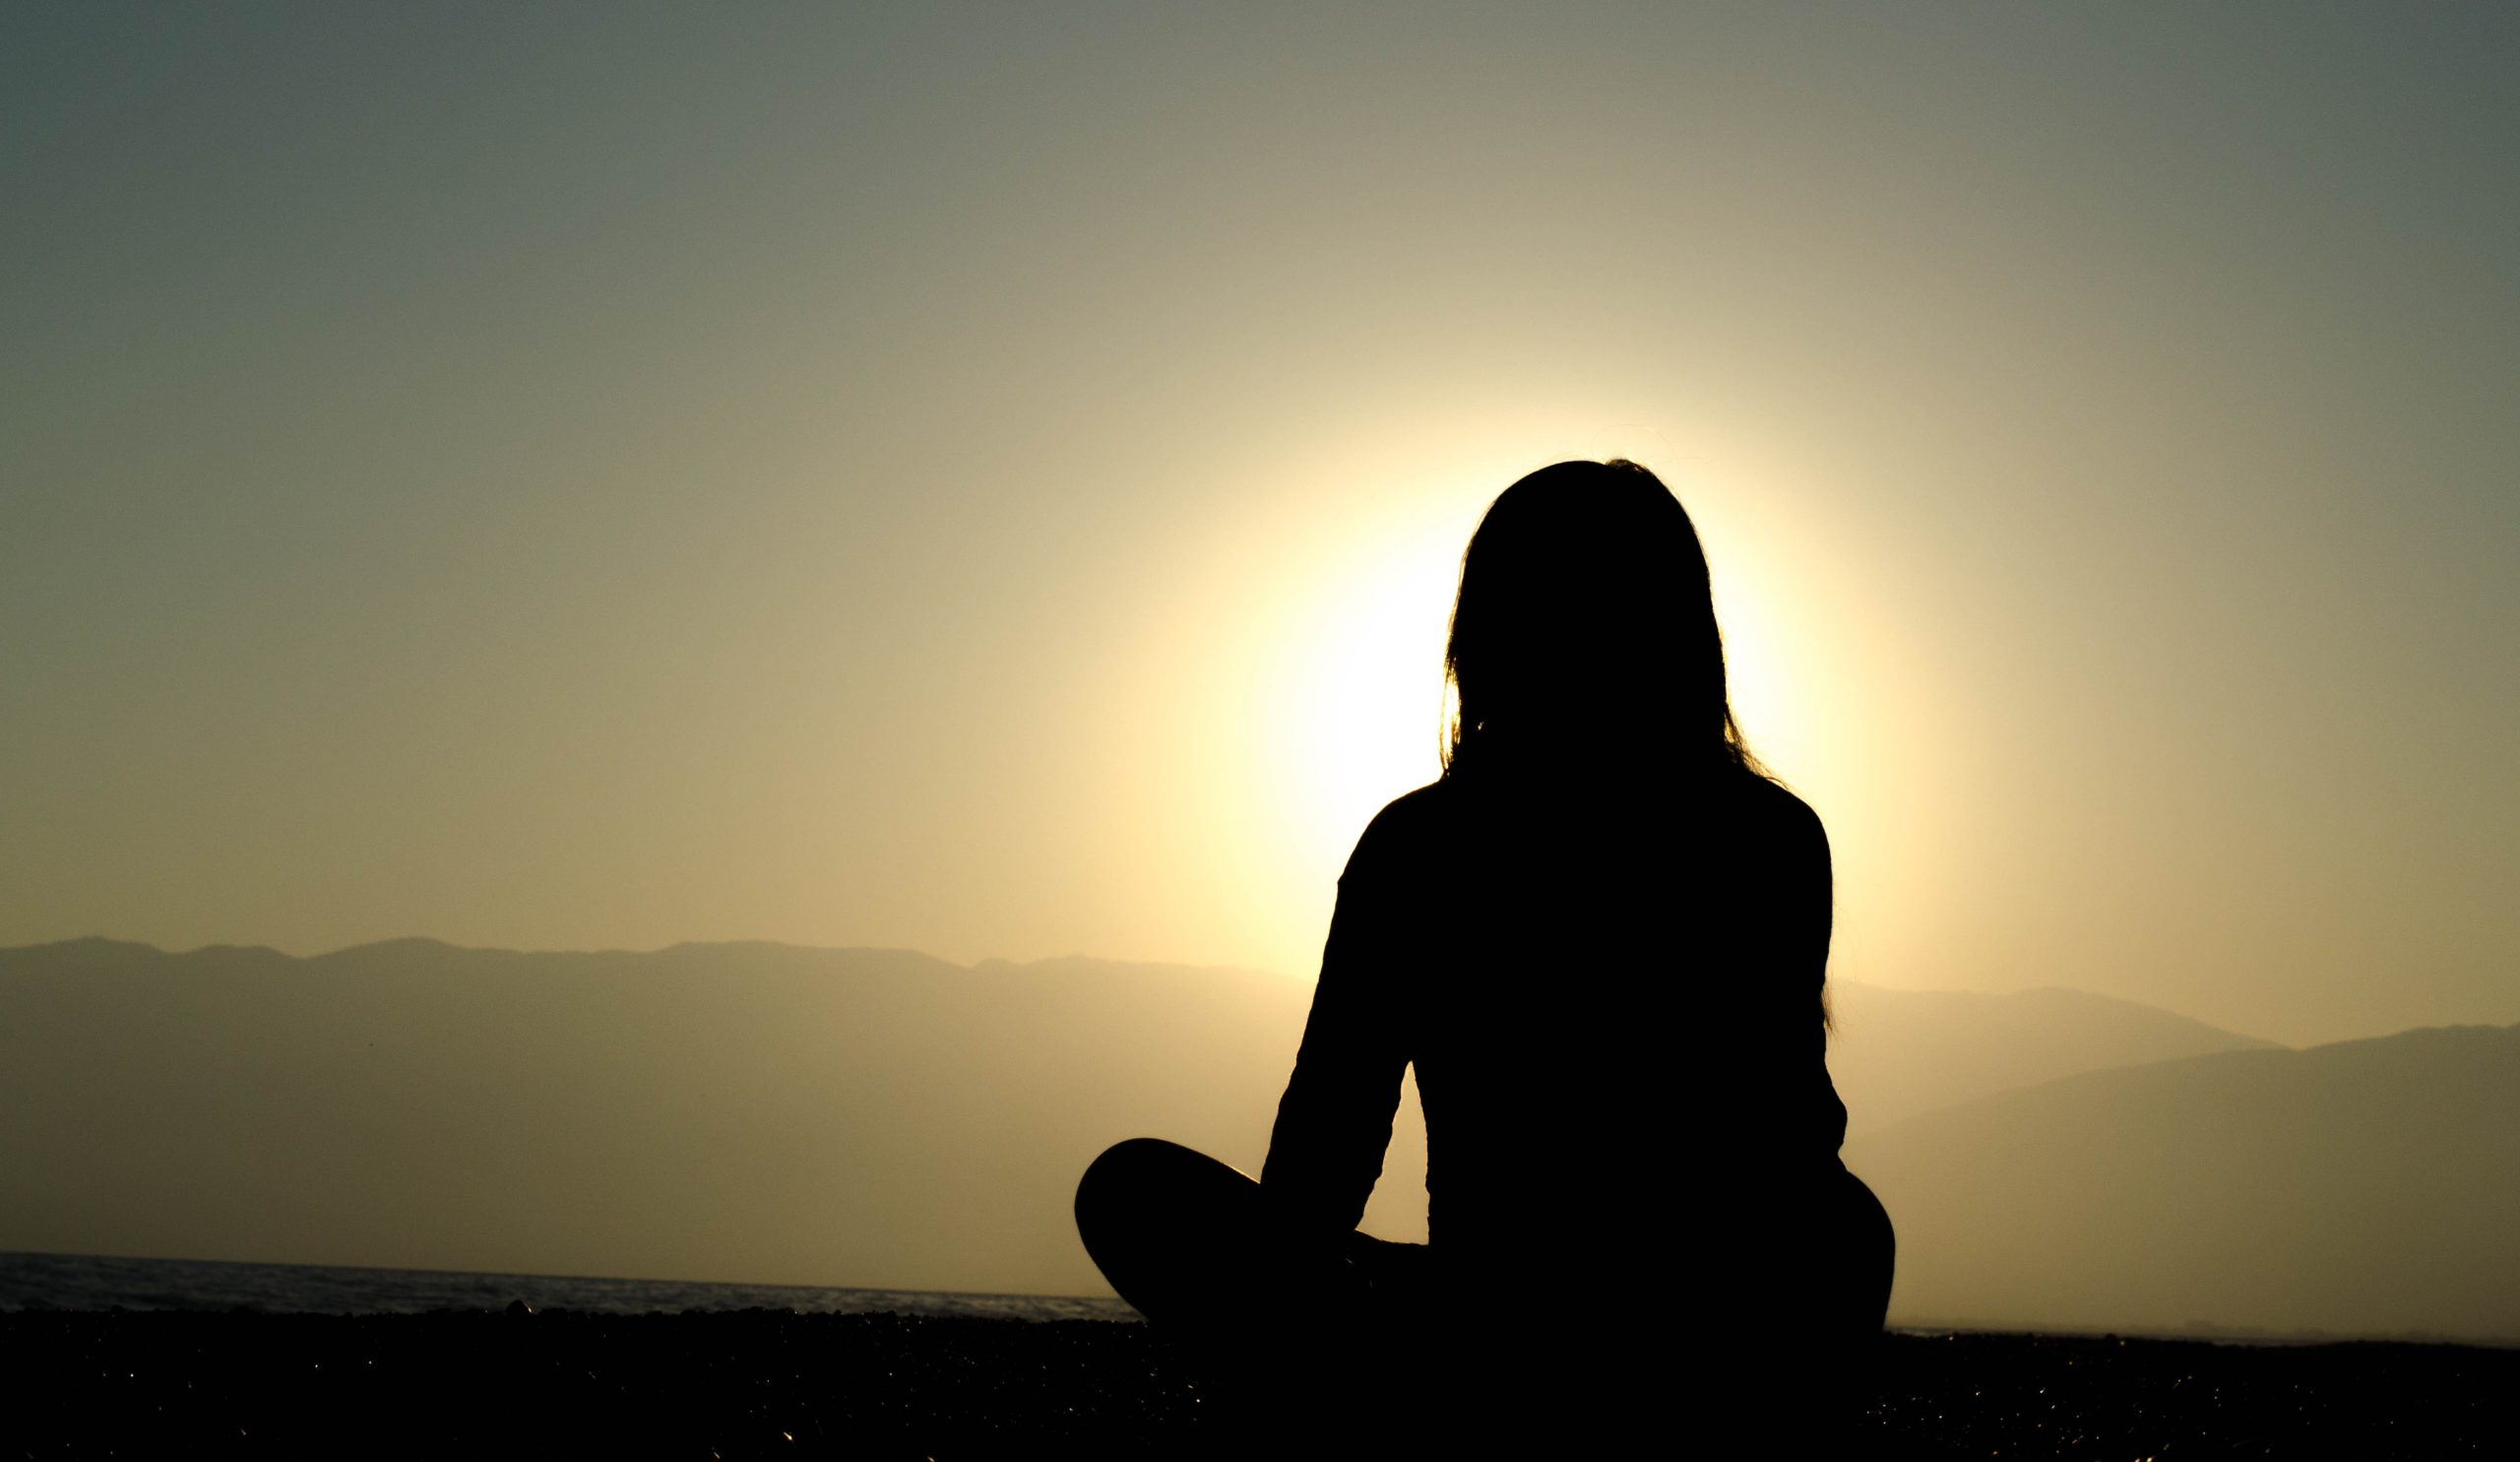 silhouette of a woman sitting cross legged with mountains in the distance with the sun shining behind her